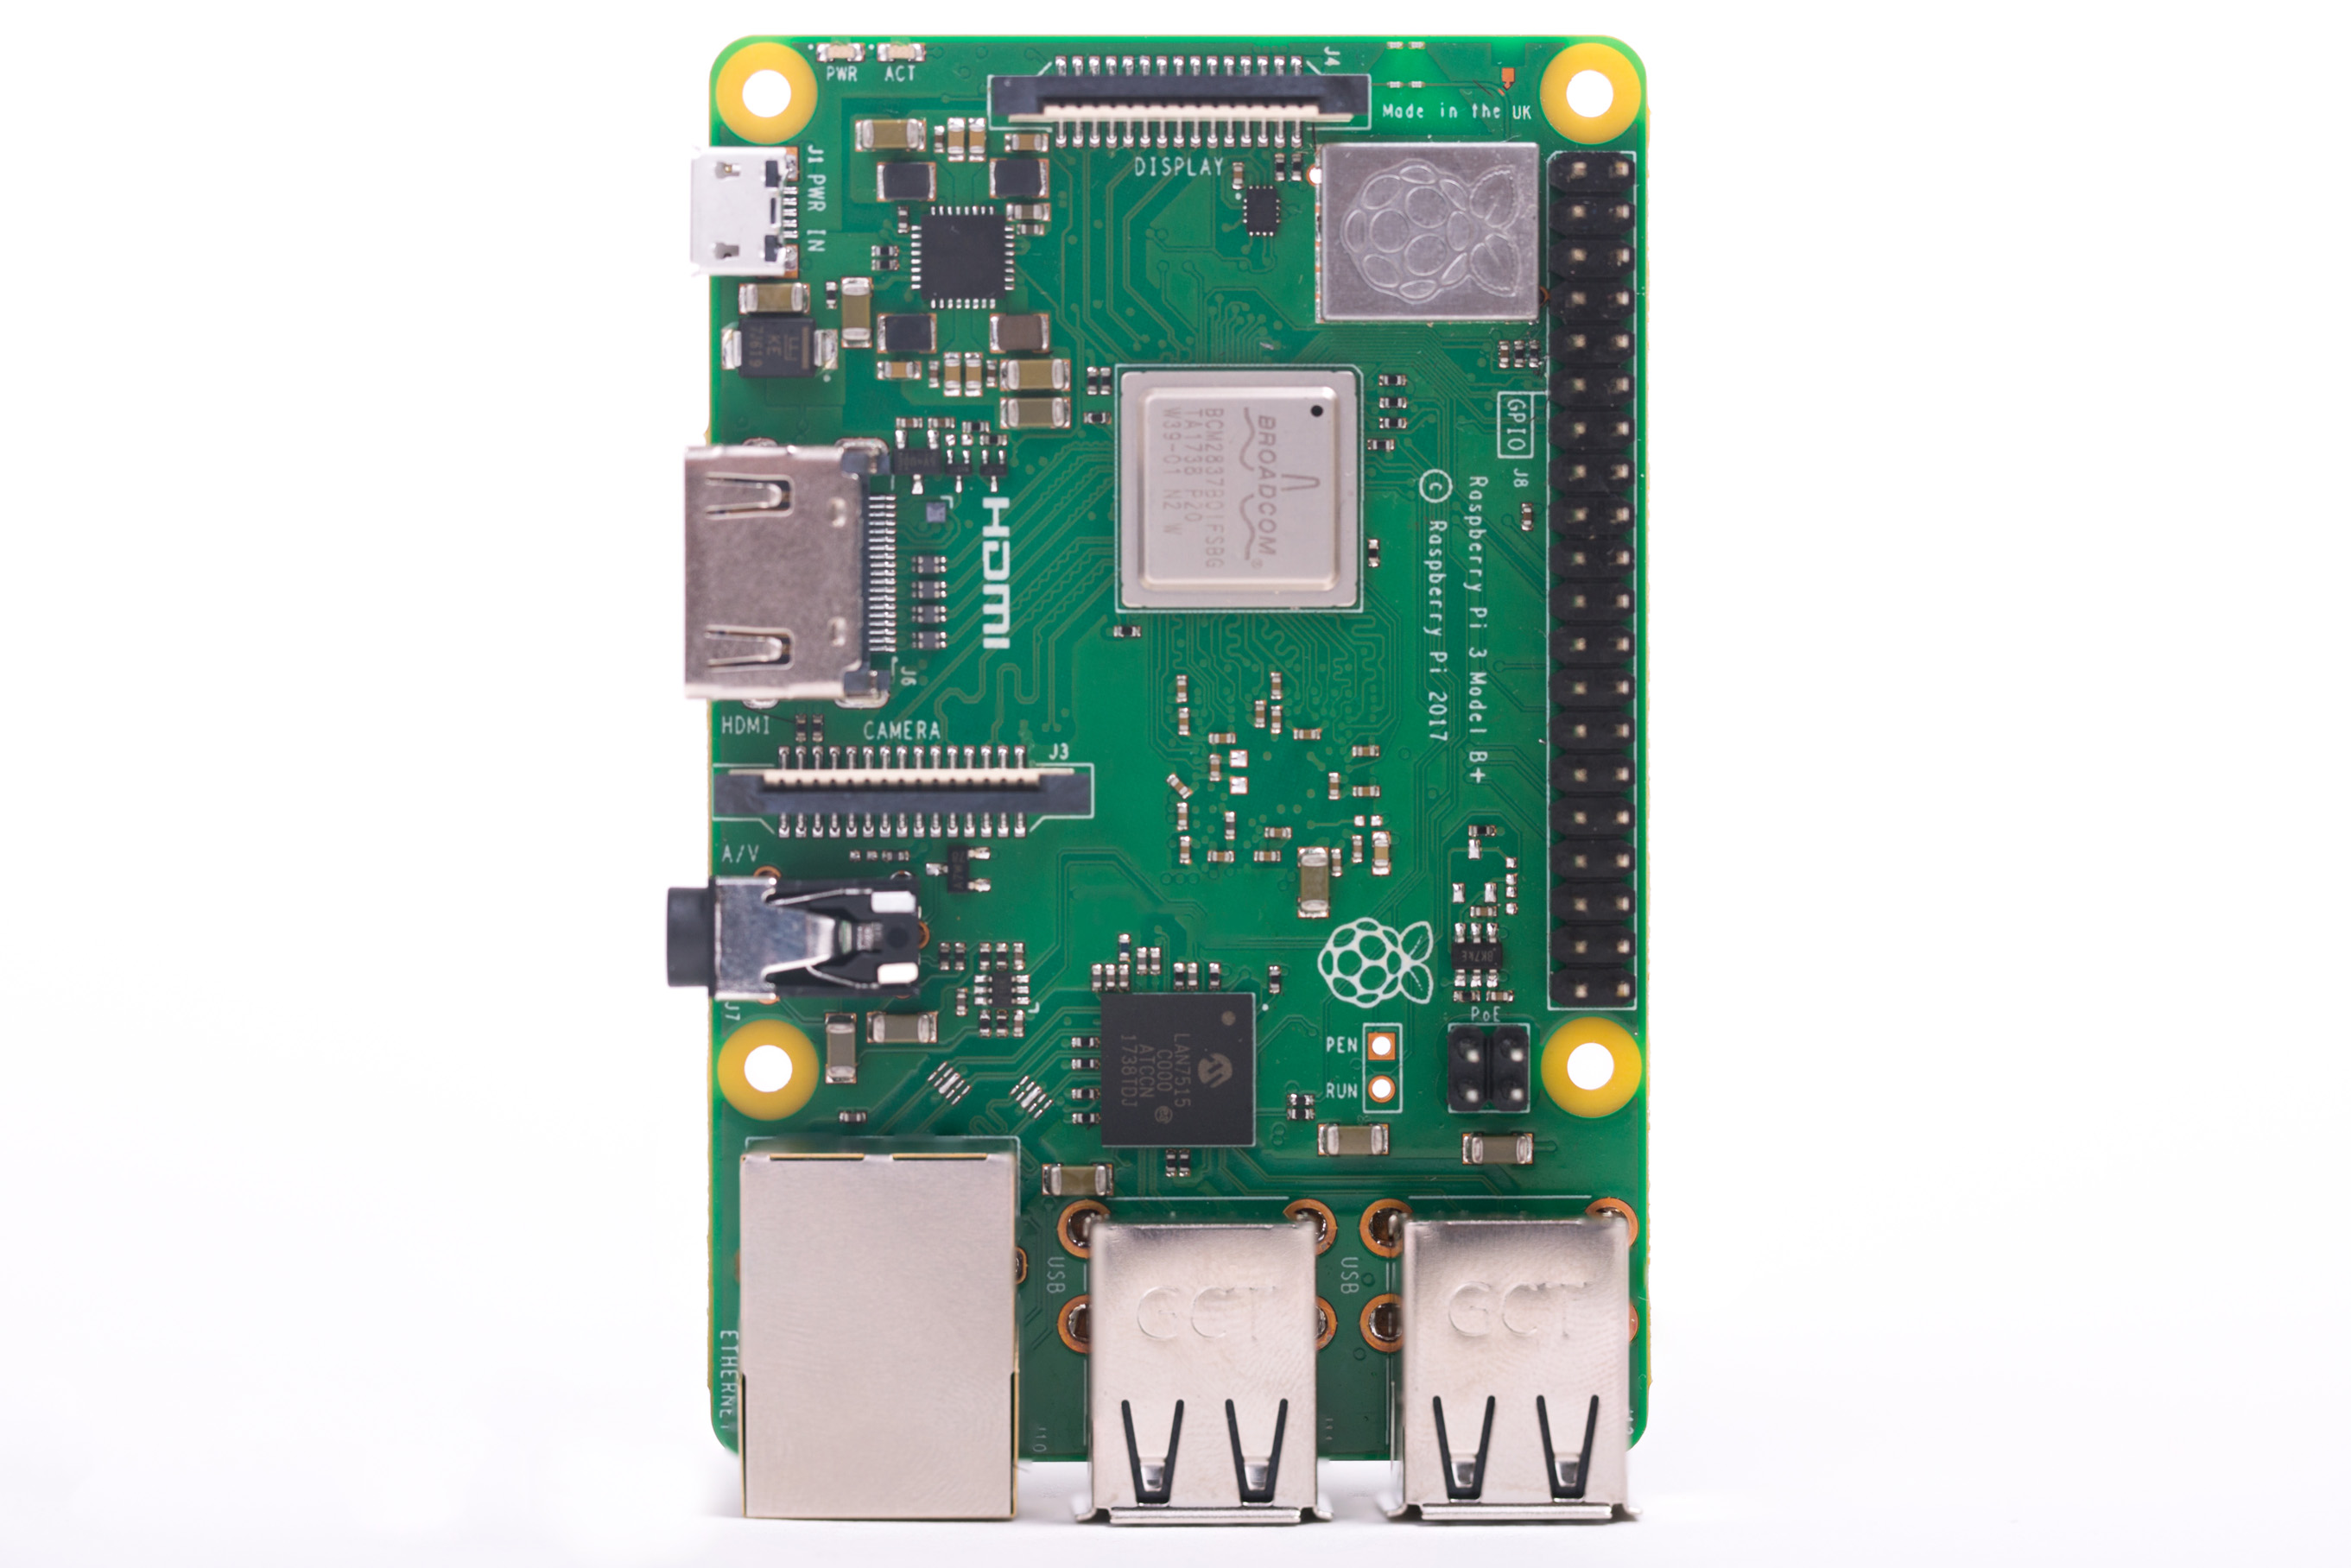 Raspberry Pi 3 Model B+: A closer look at the newest board